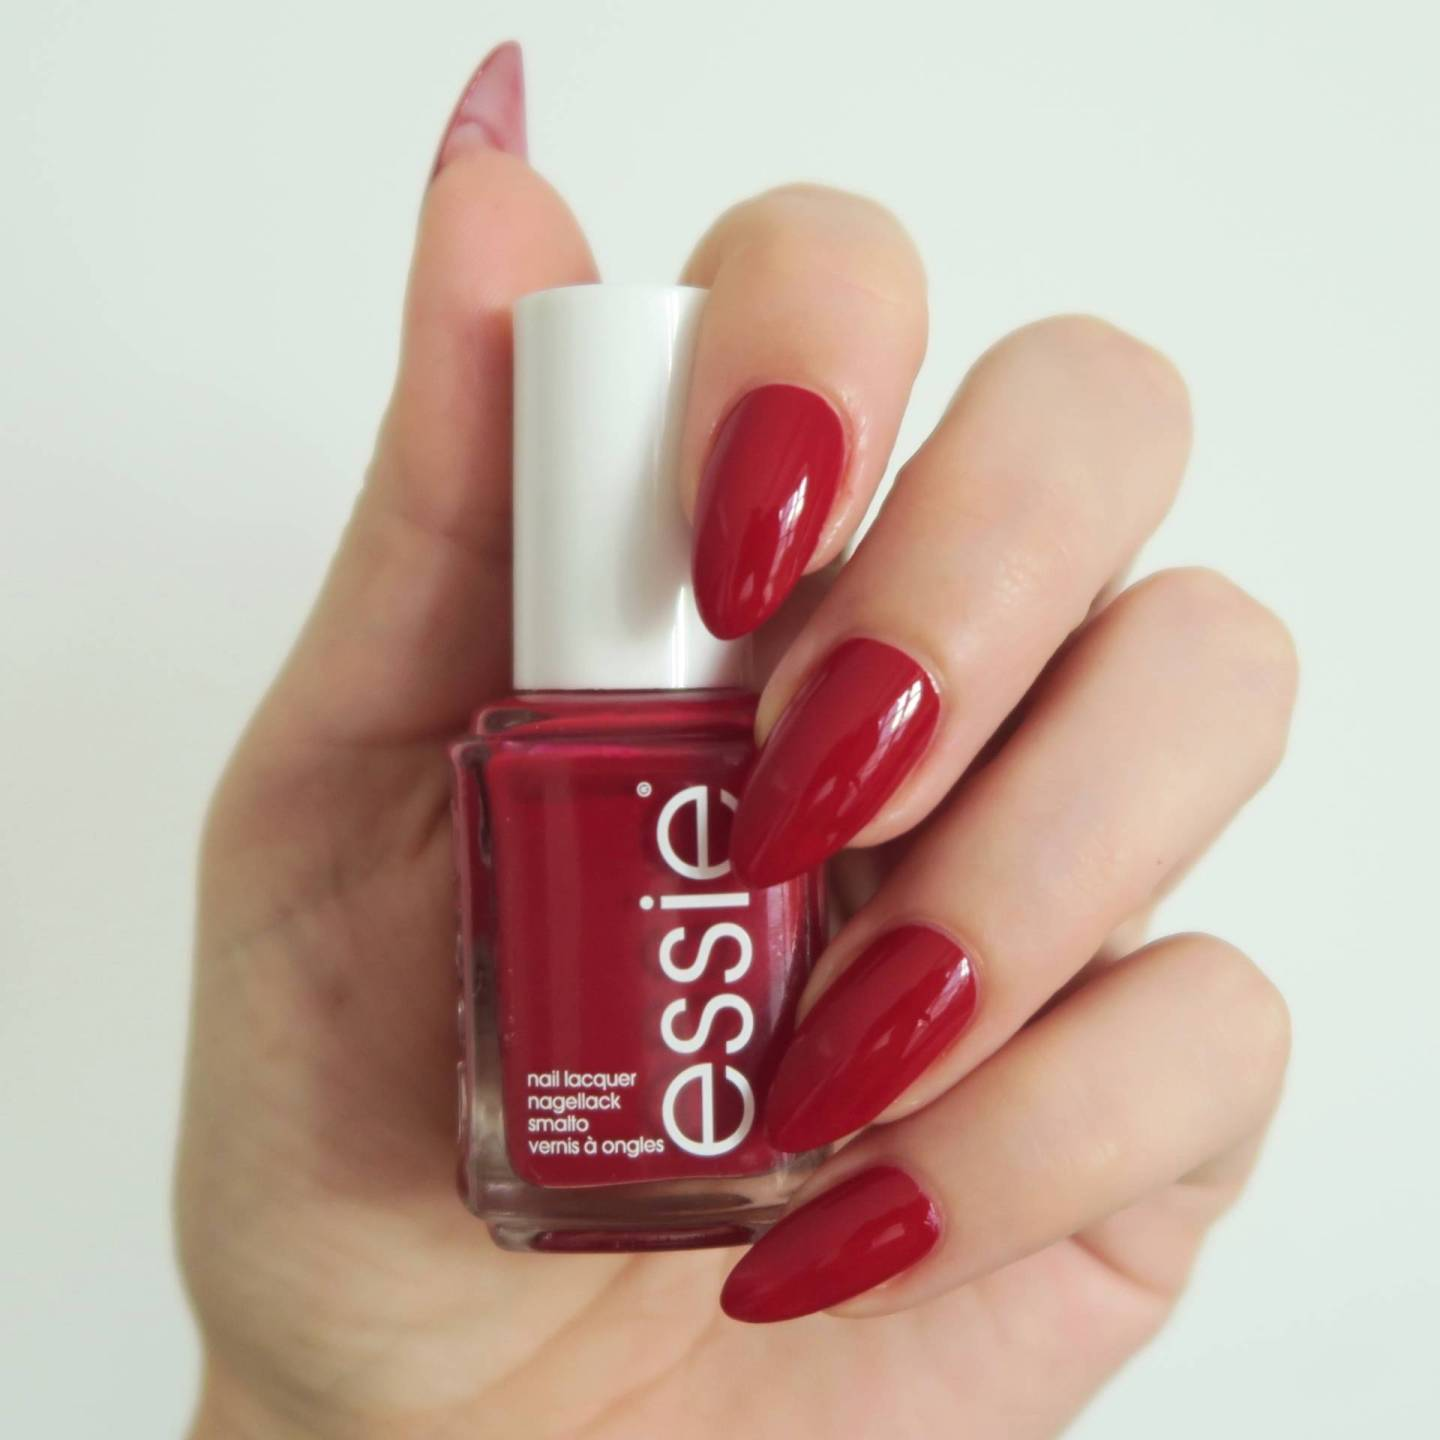 Essie Fall Collection 2016 Tokyo Review Maki Me Happy - Talonted Lex